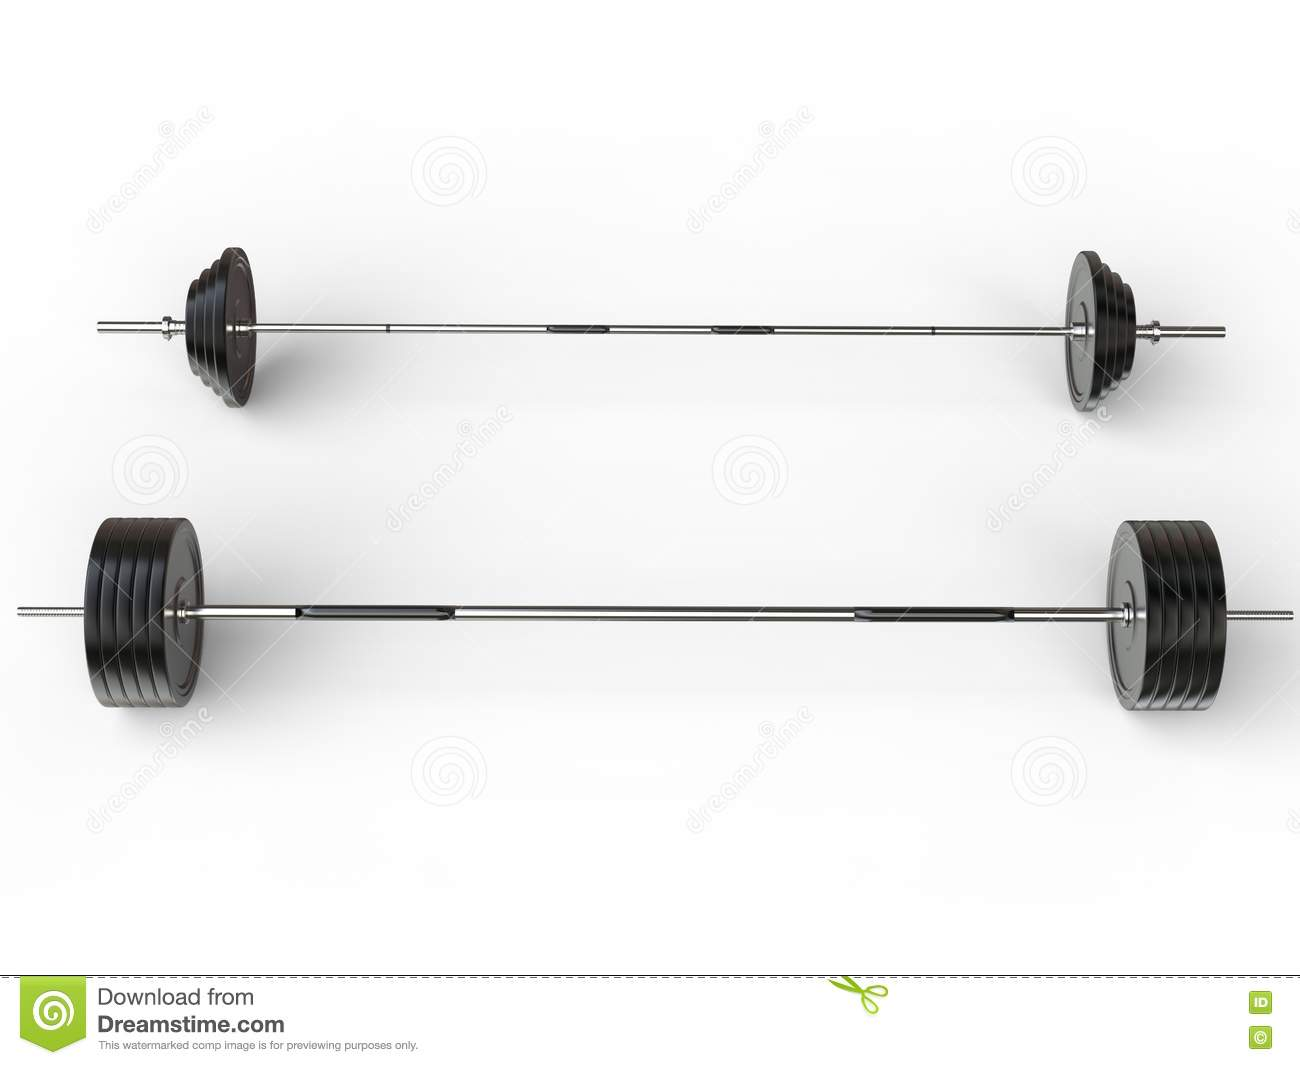 Olympic And Gym Barbell Weights - Top View Stock Photo - Image: 73977273